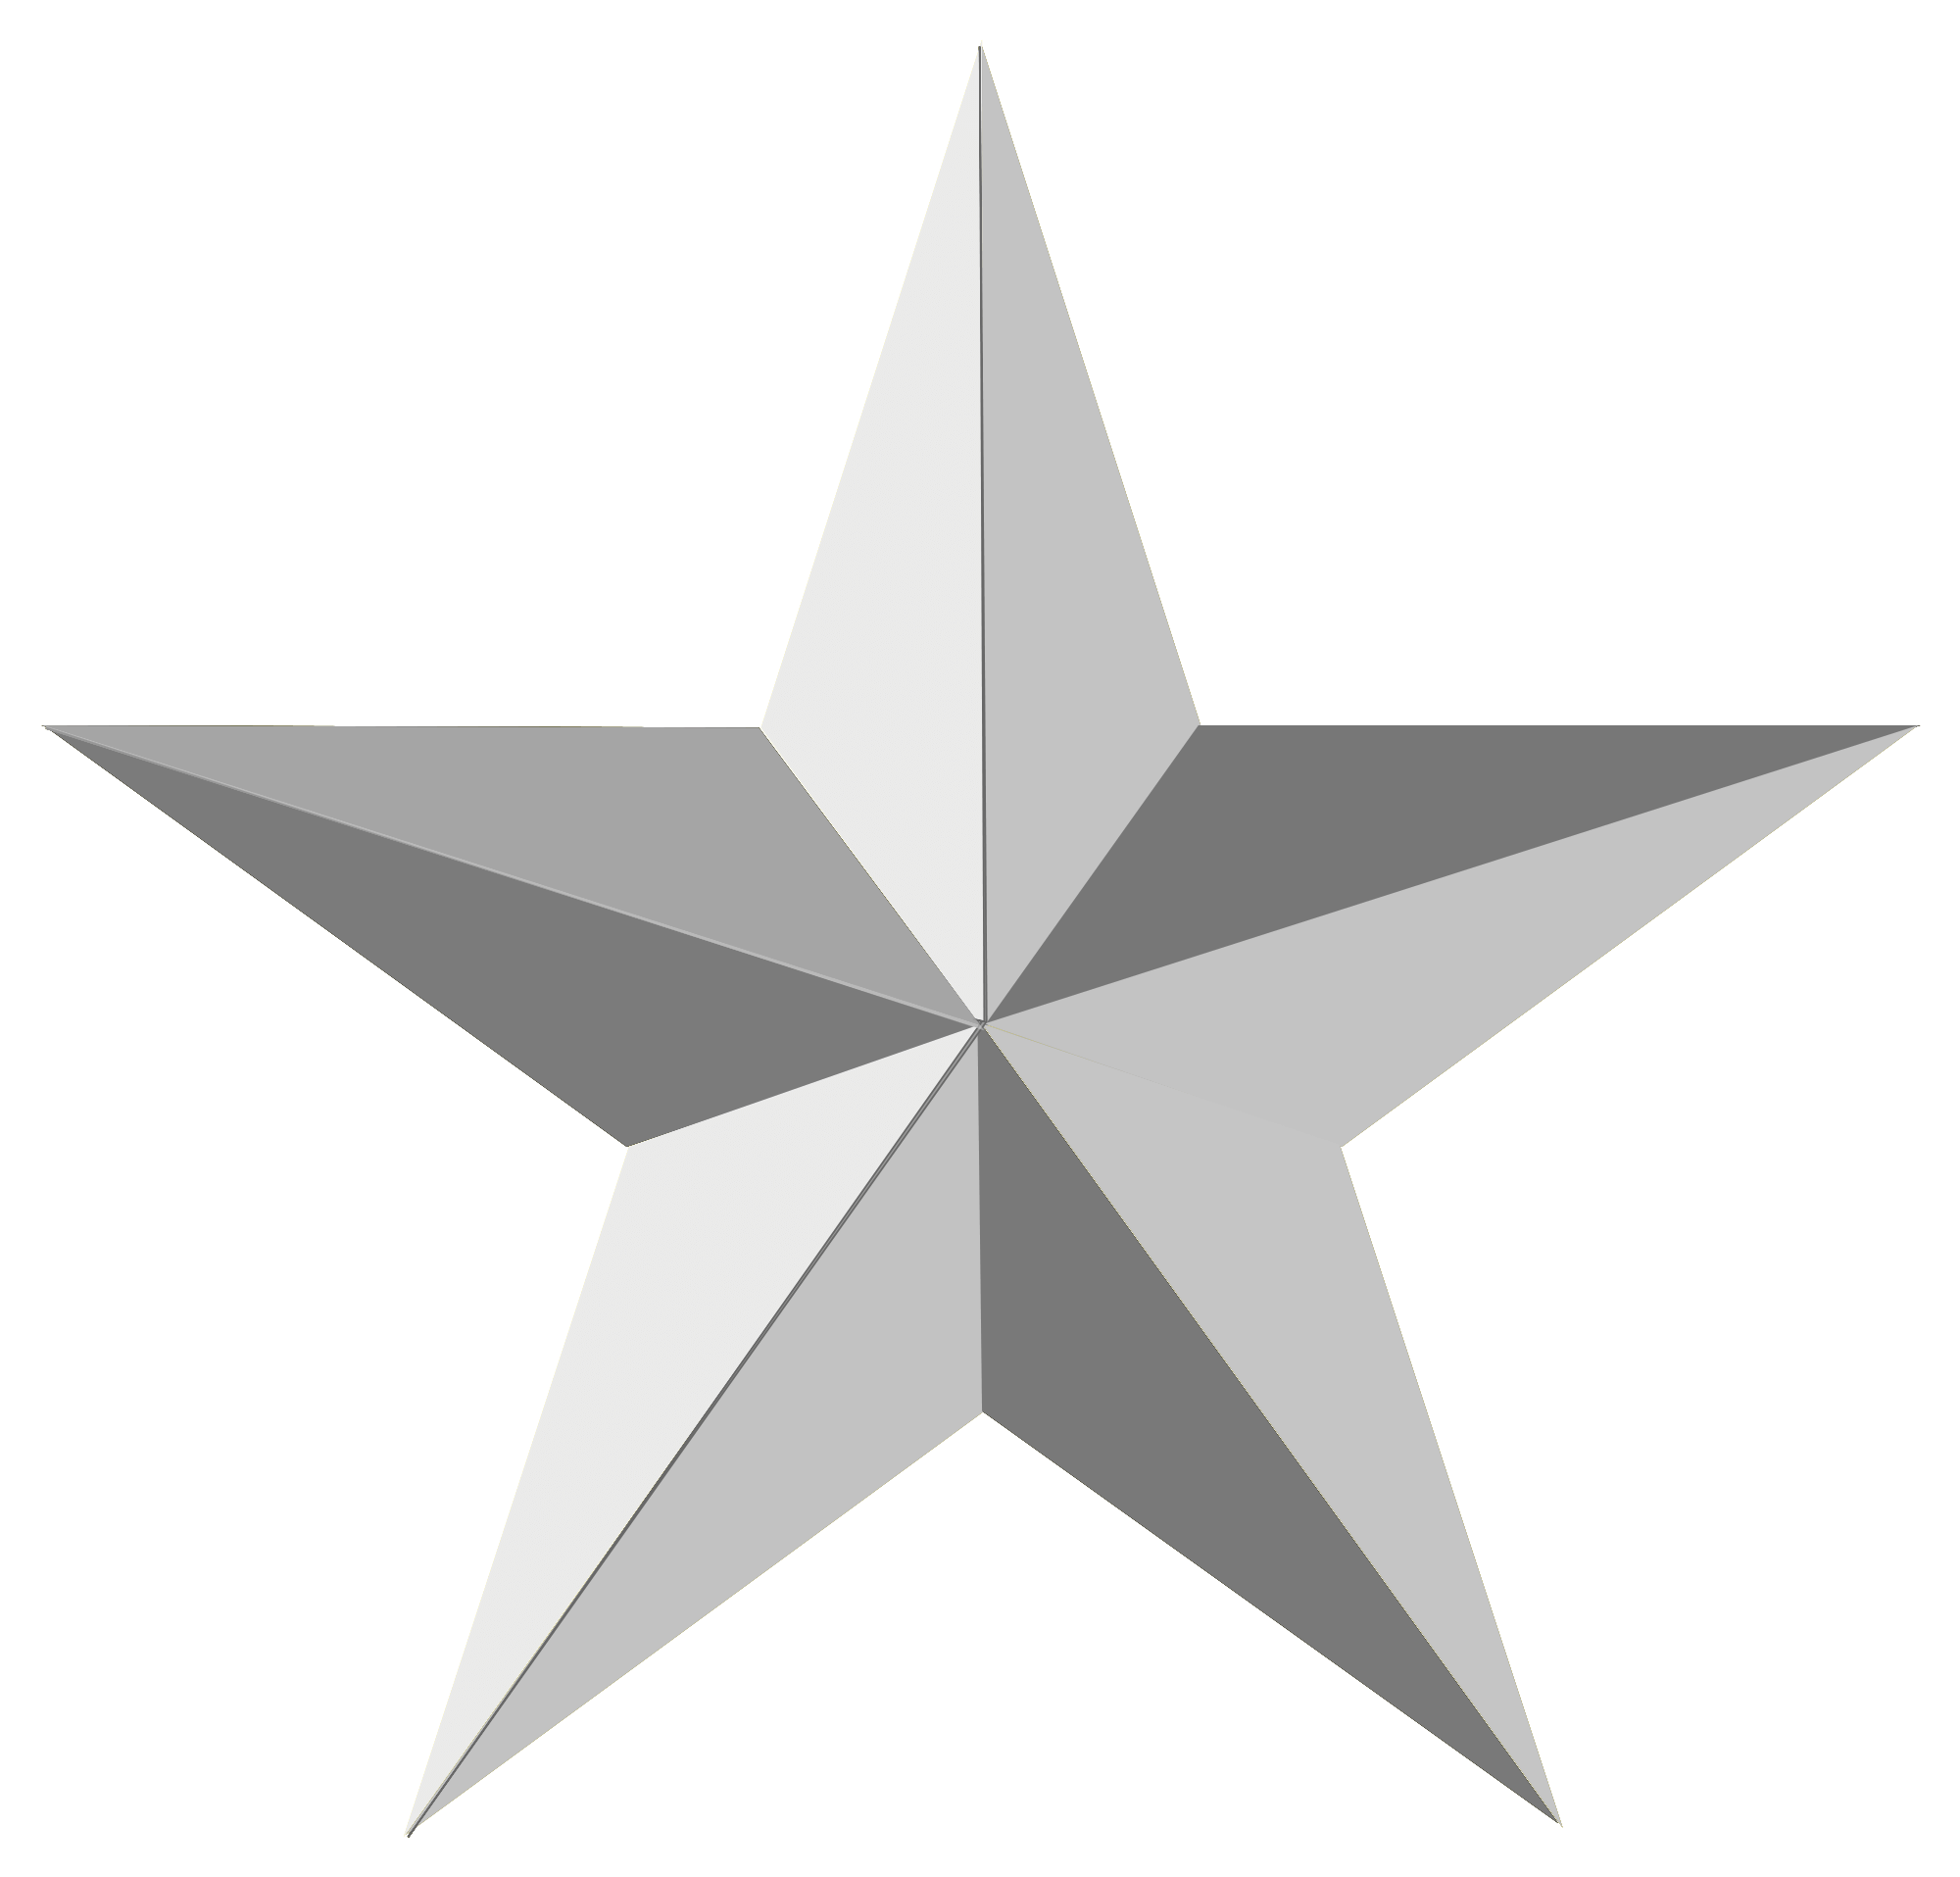 Star png image. Free picture download